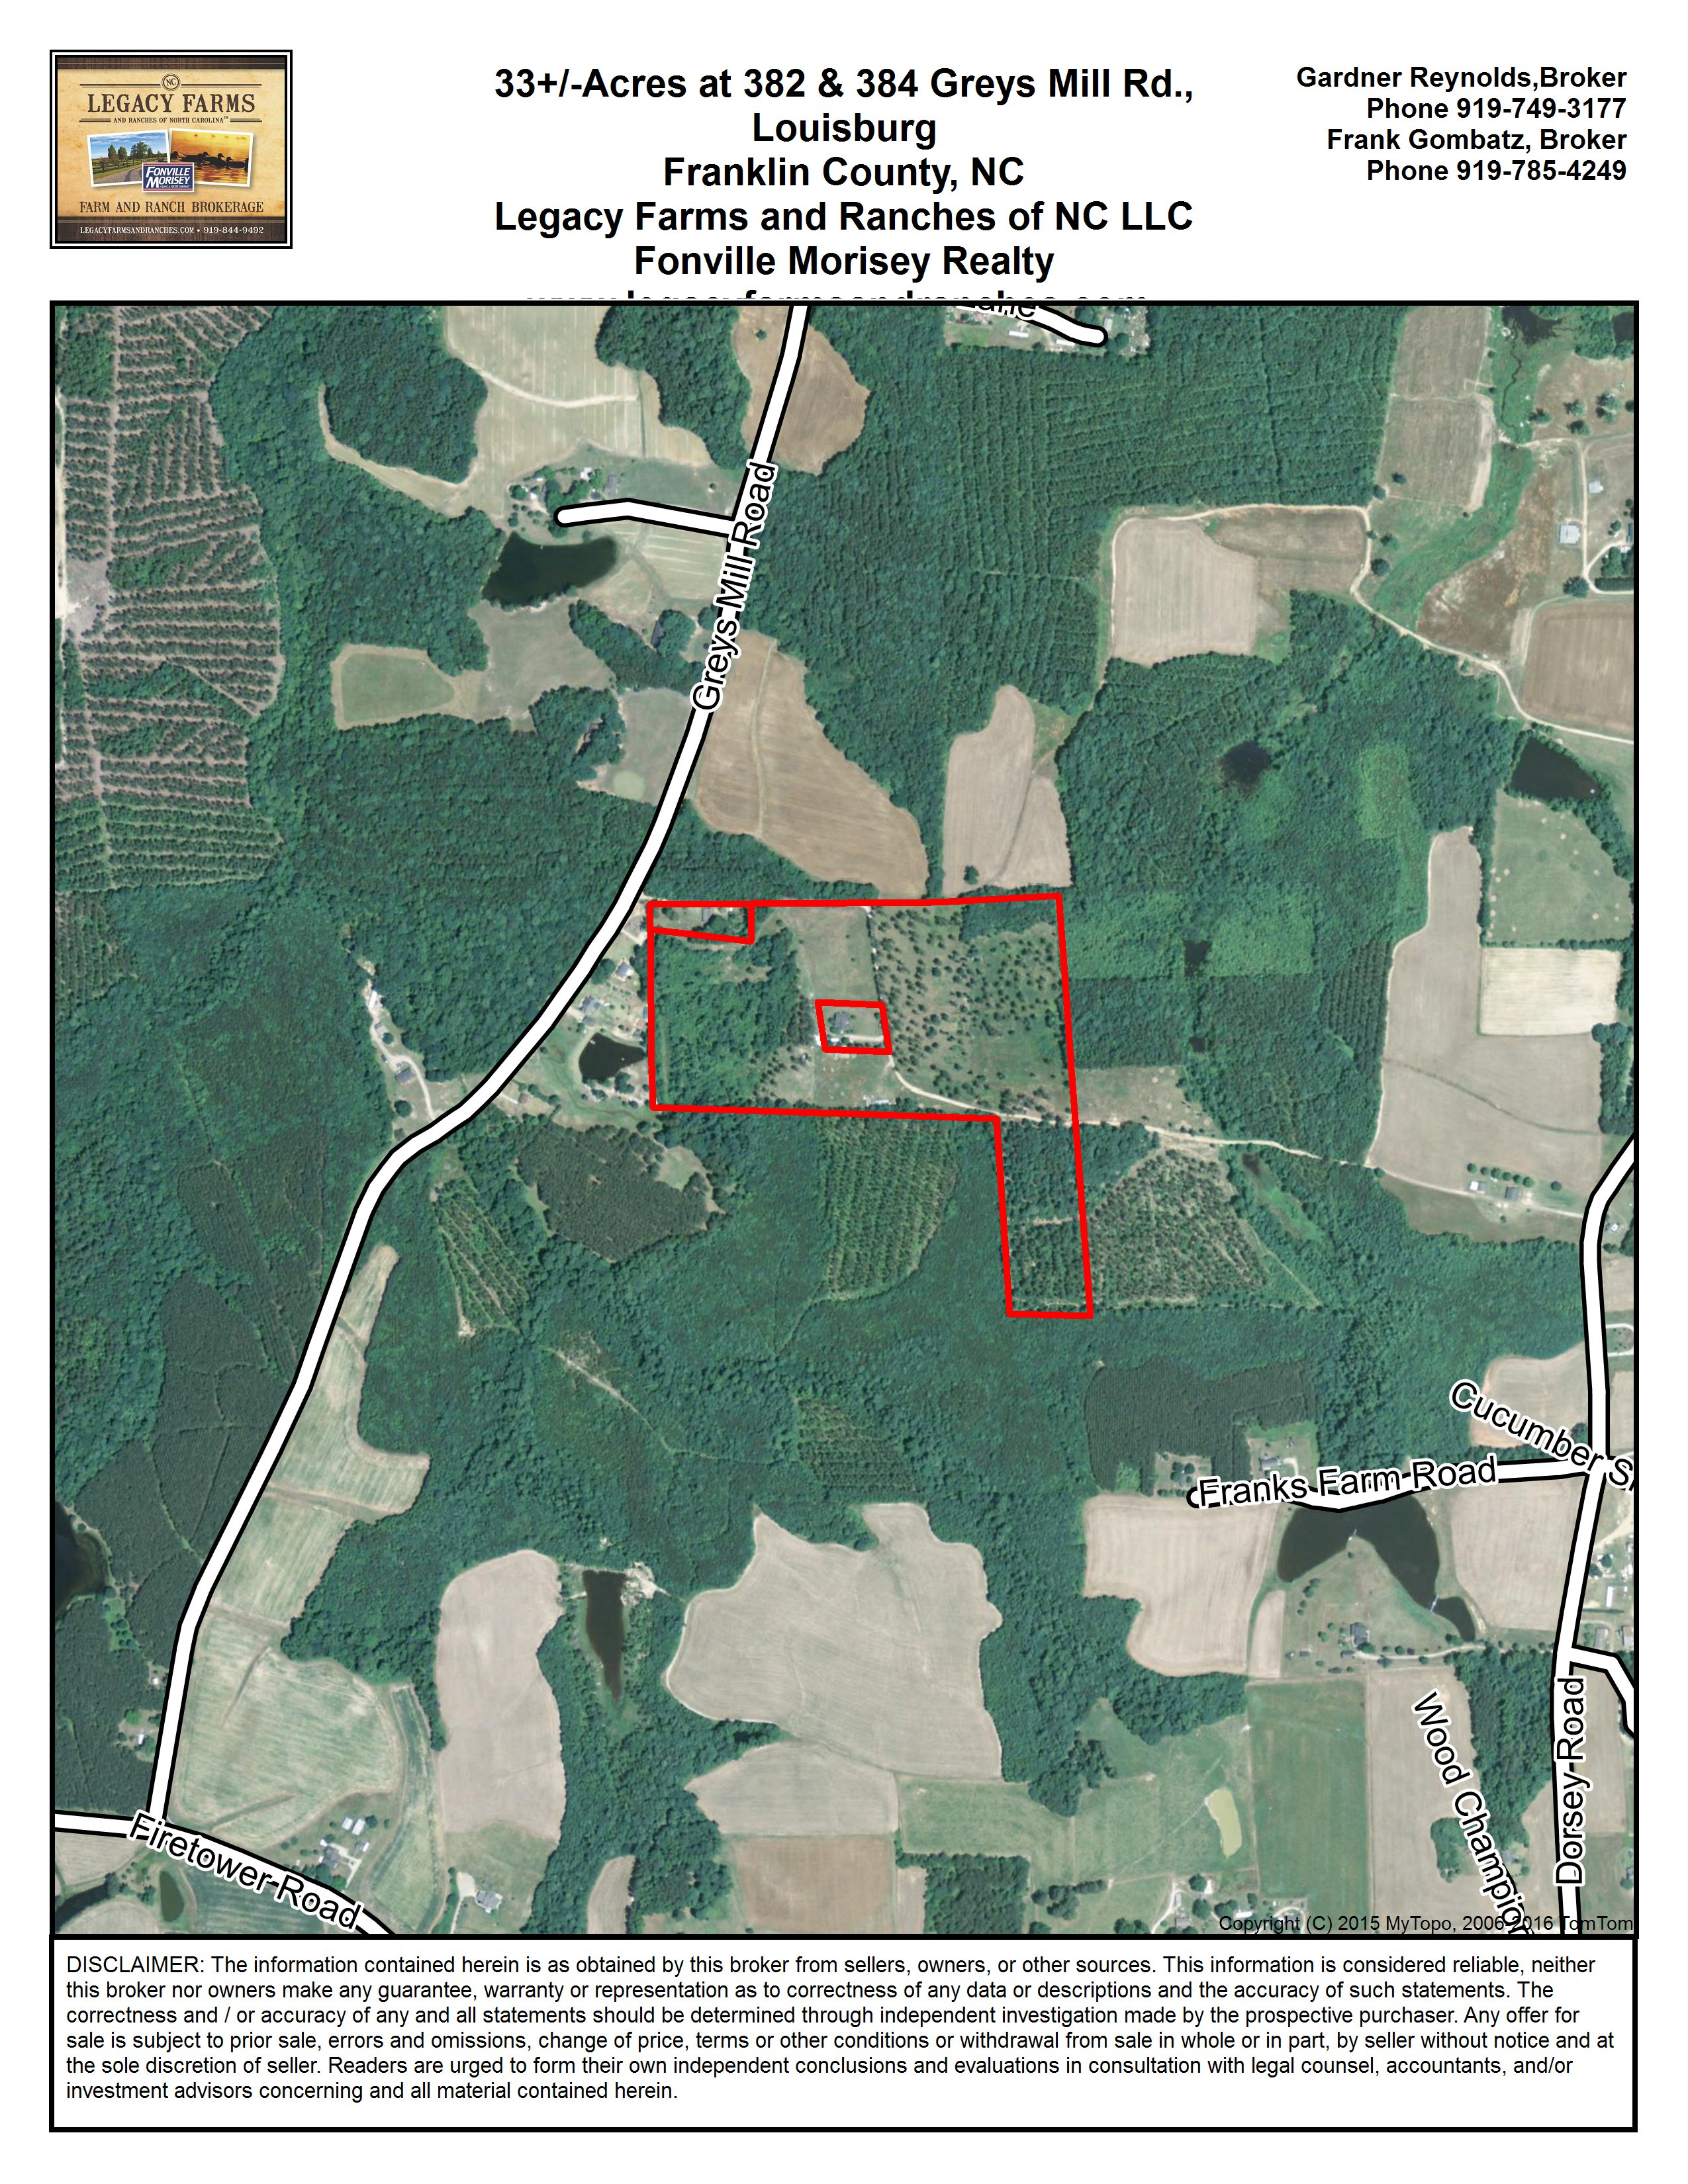 Louisburg Franklin County North Carolina Land For Sale